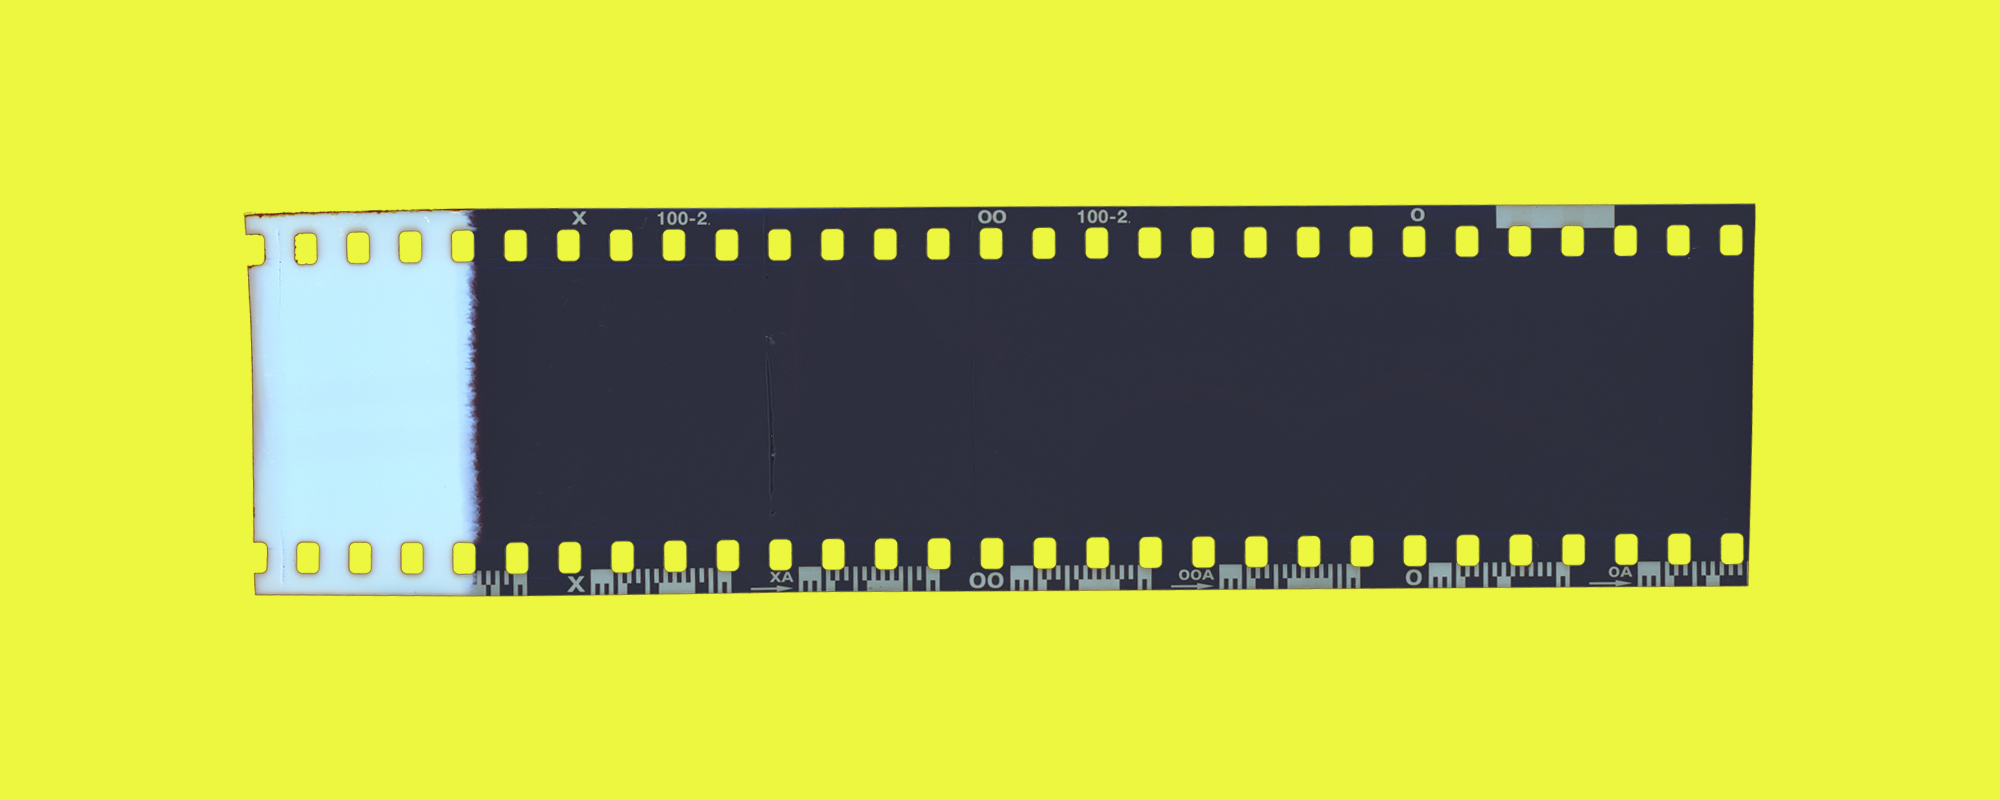 Free Film Strips Png Overlays For Media Projects Filtergrade